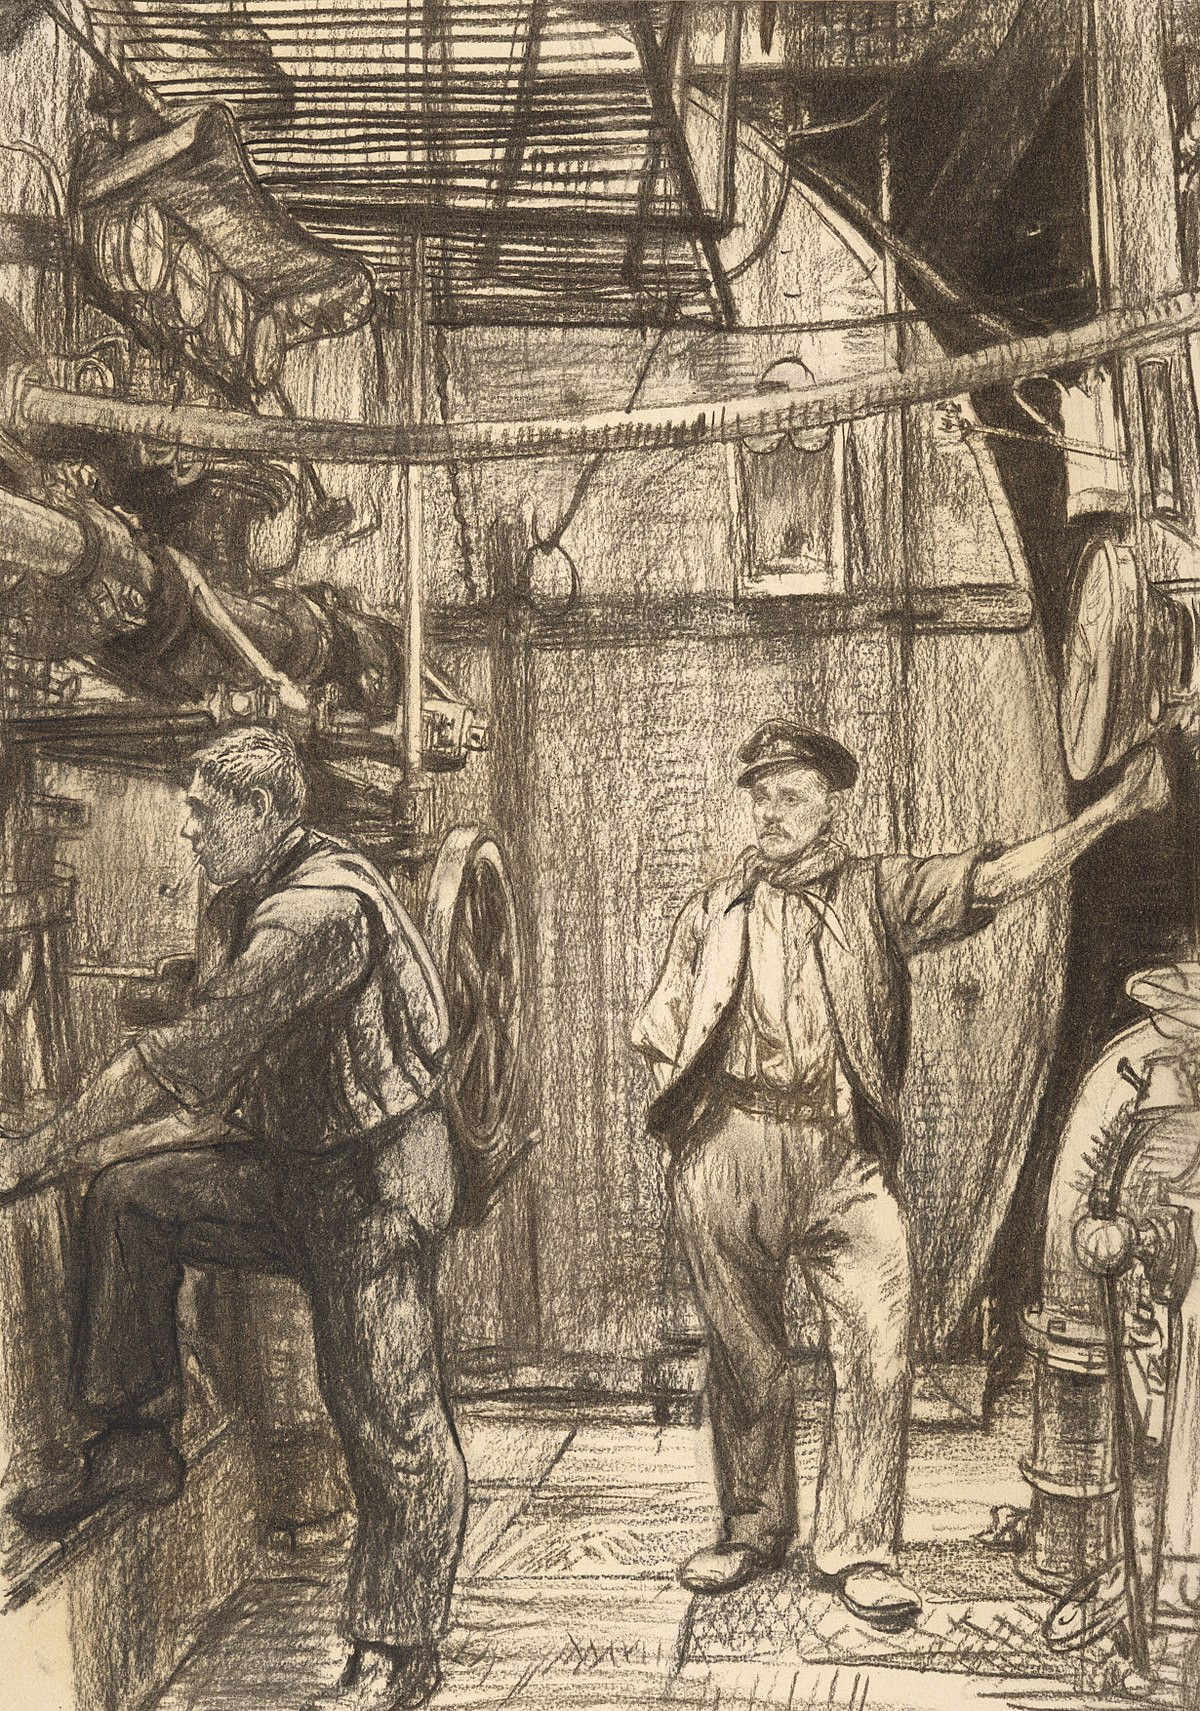 Trawler Engine Room: File:The Engine Room, Hm Trawler Mackenzie Art.IWMART897